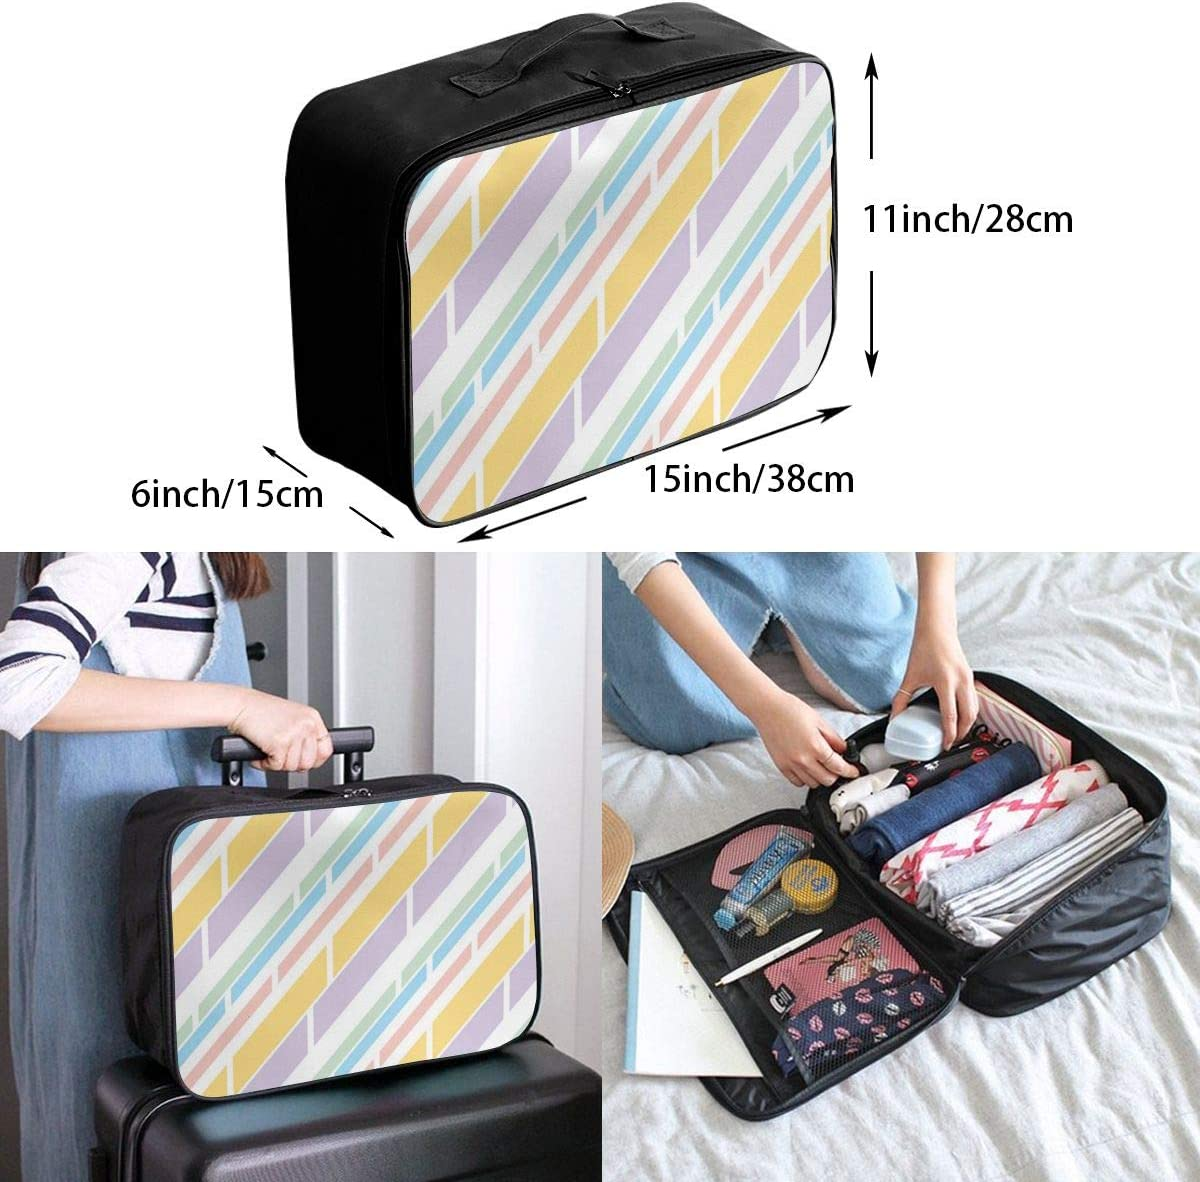 Yunshm Pale Color Stripe Blue Yellow Purple Stripes Customized Trolley Handbag Waterproof Unisex Large Capacity For Business Travel Storage